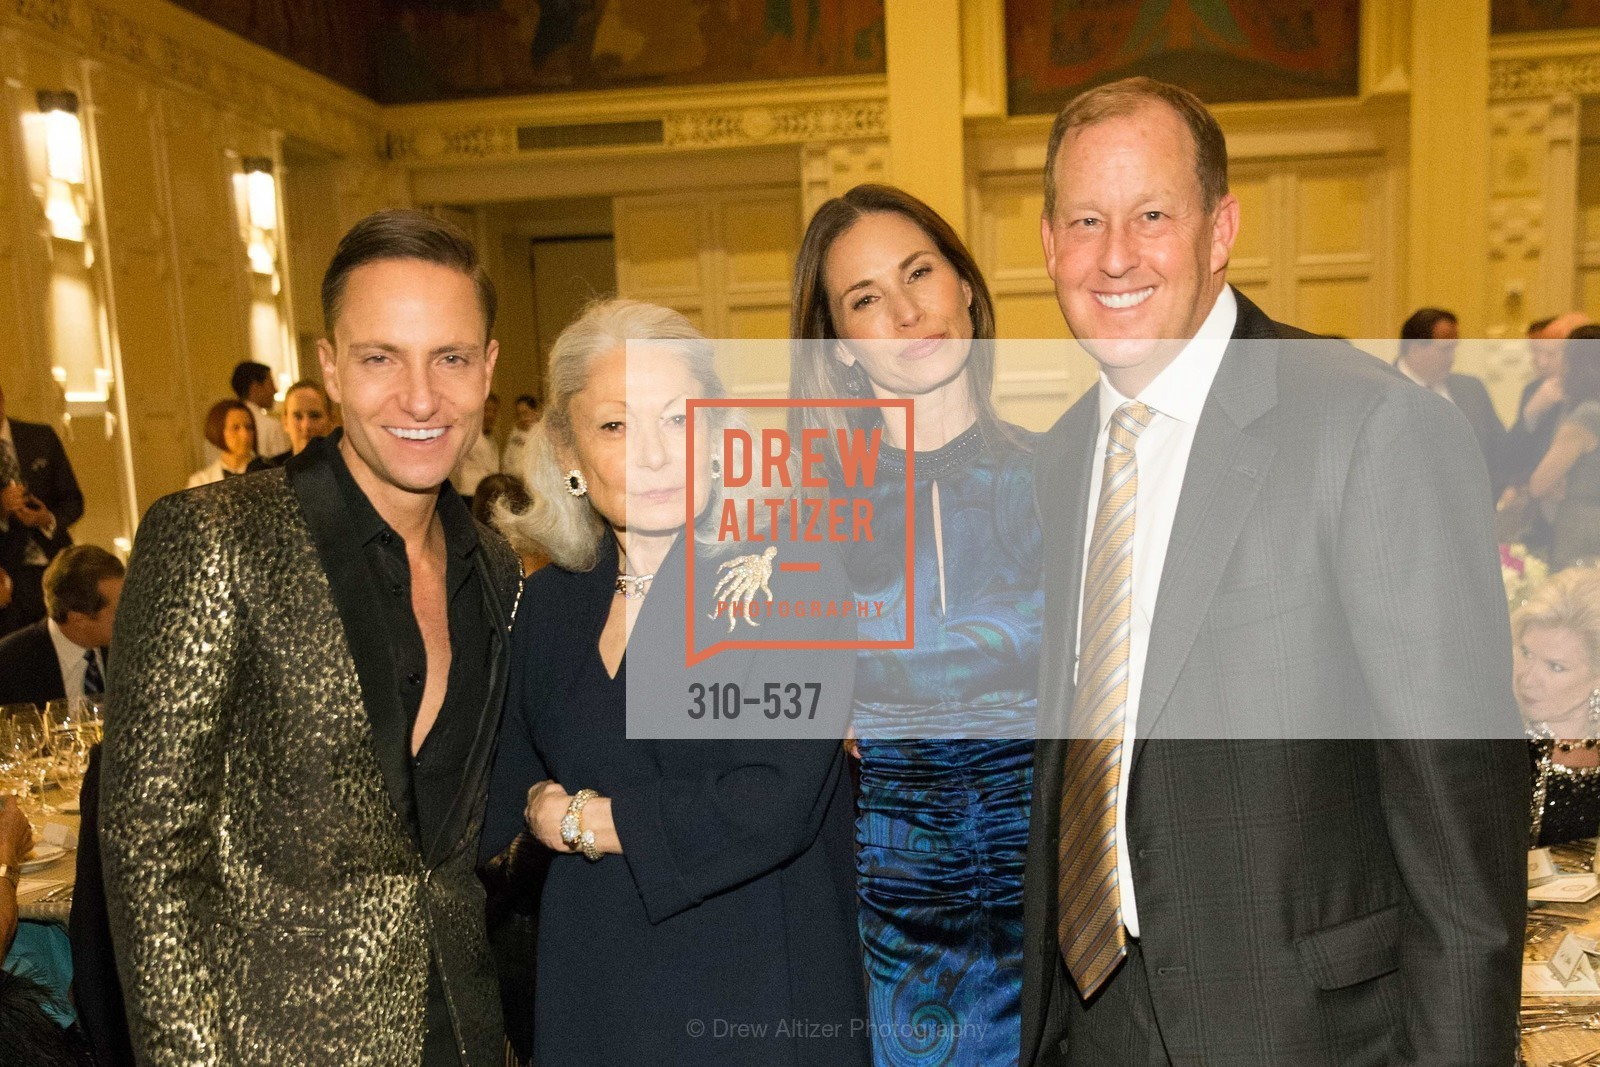 Ken Fulk, Denise Hale, Patty Rosenfeld, Michael Rosenfeld, TOP OF THE MARK'S 75TH Anniversary Party, US, November 6th, 2014,Drew Altizer, Drew Altizer Photography, full-service agency, private events, San Francisco photographer, photographer california